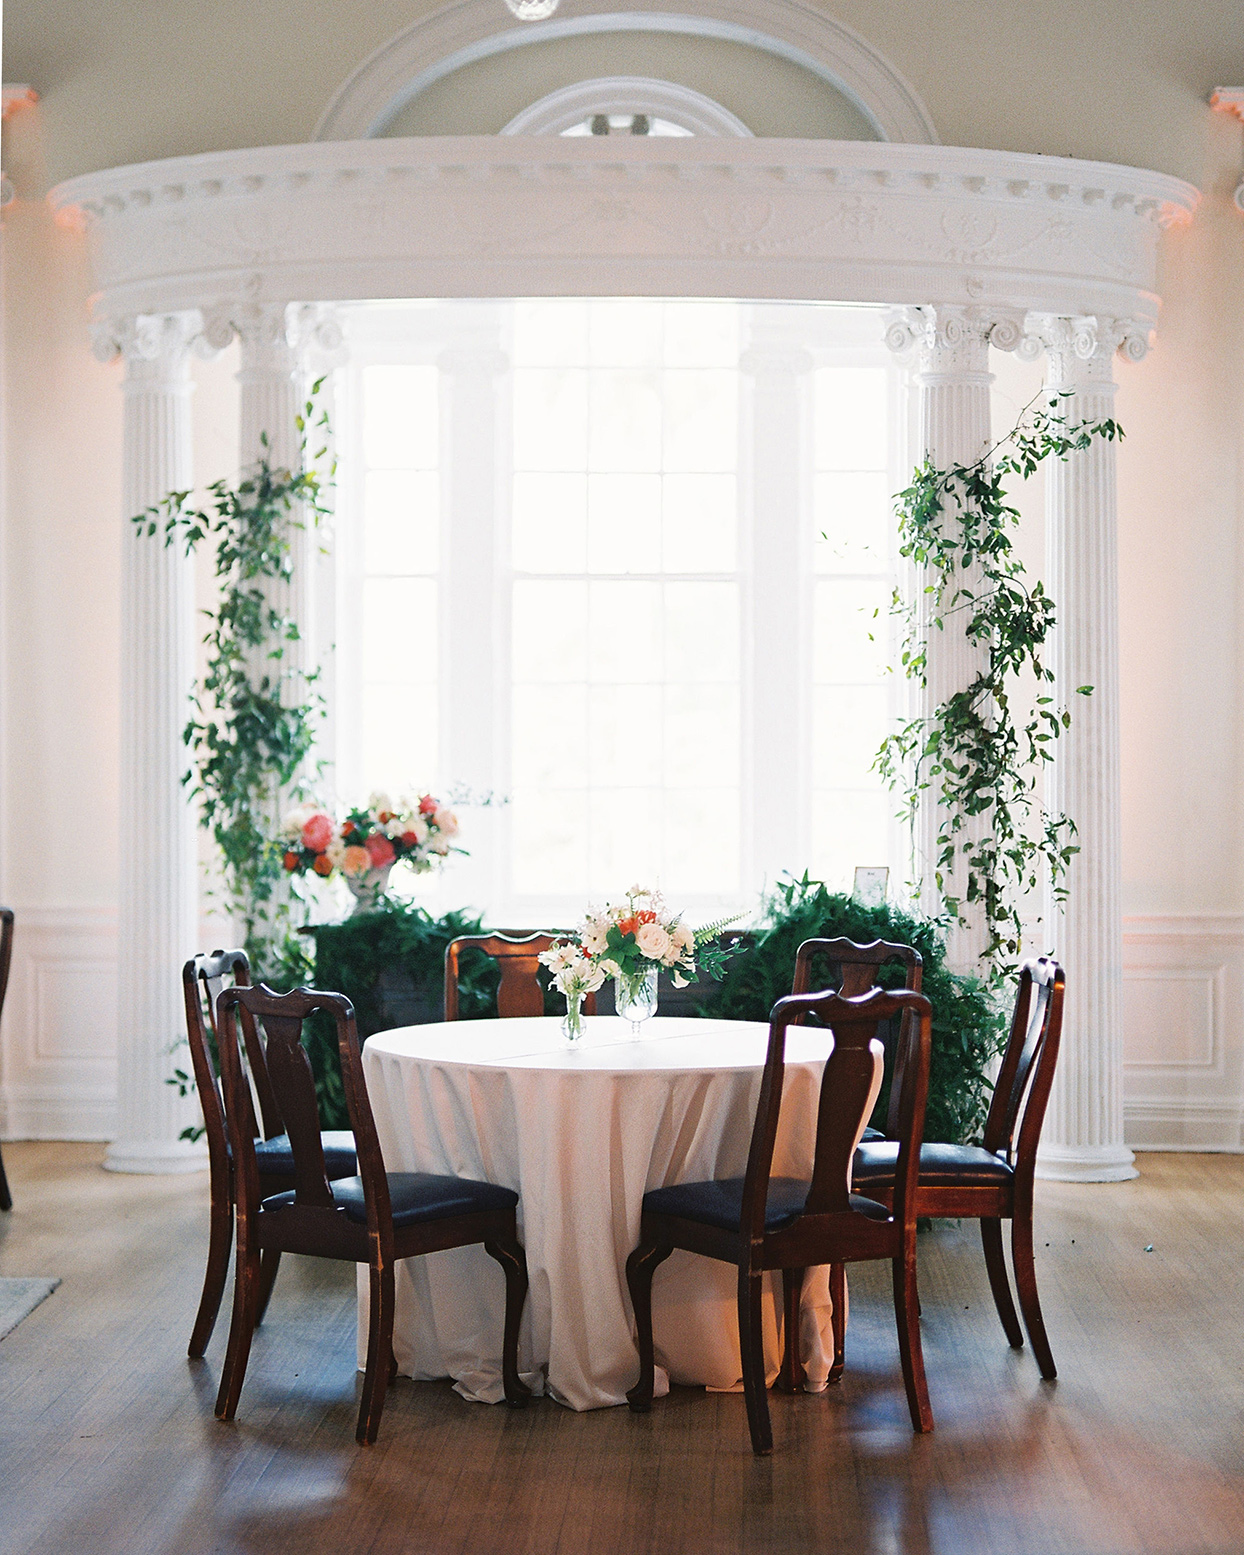 beverly steve wedding reception table in front of white window